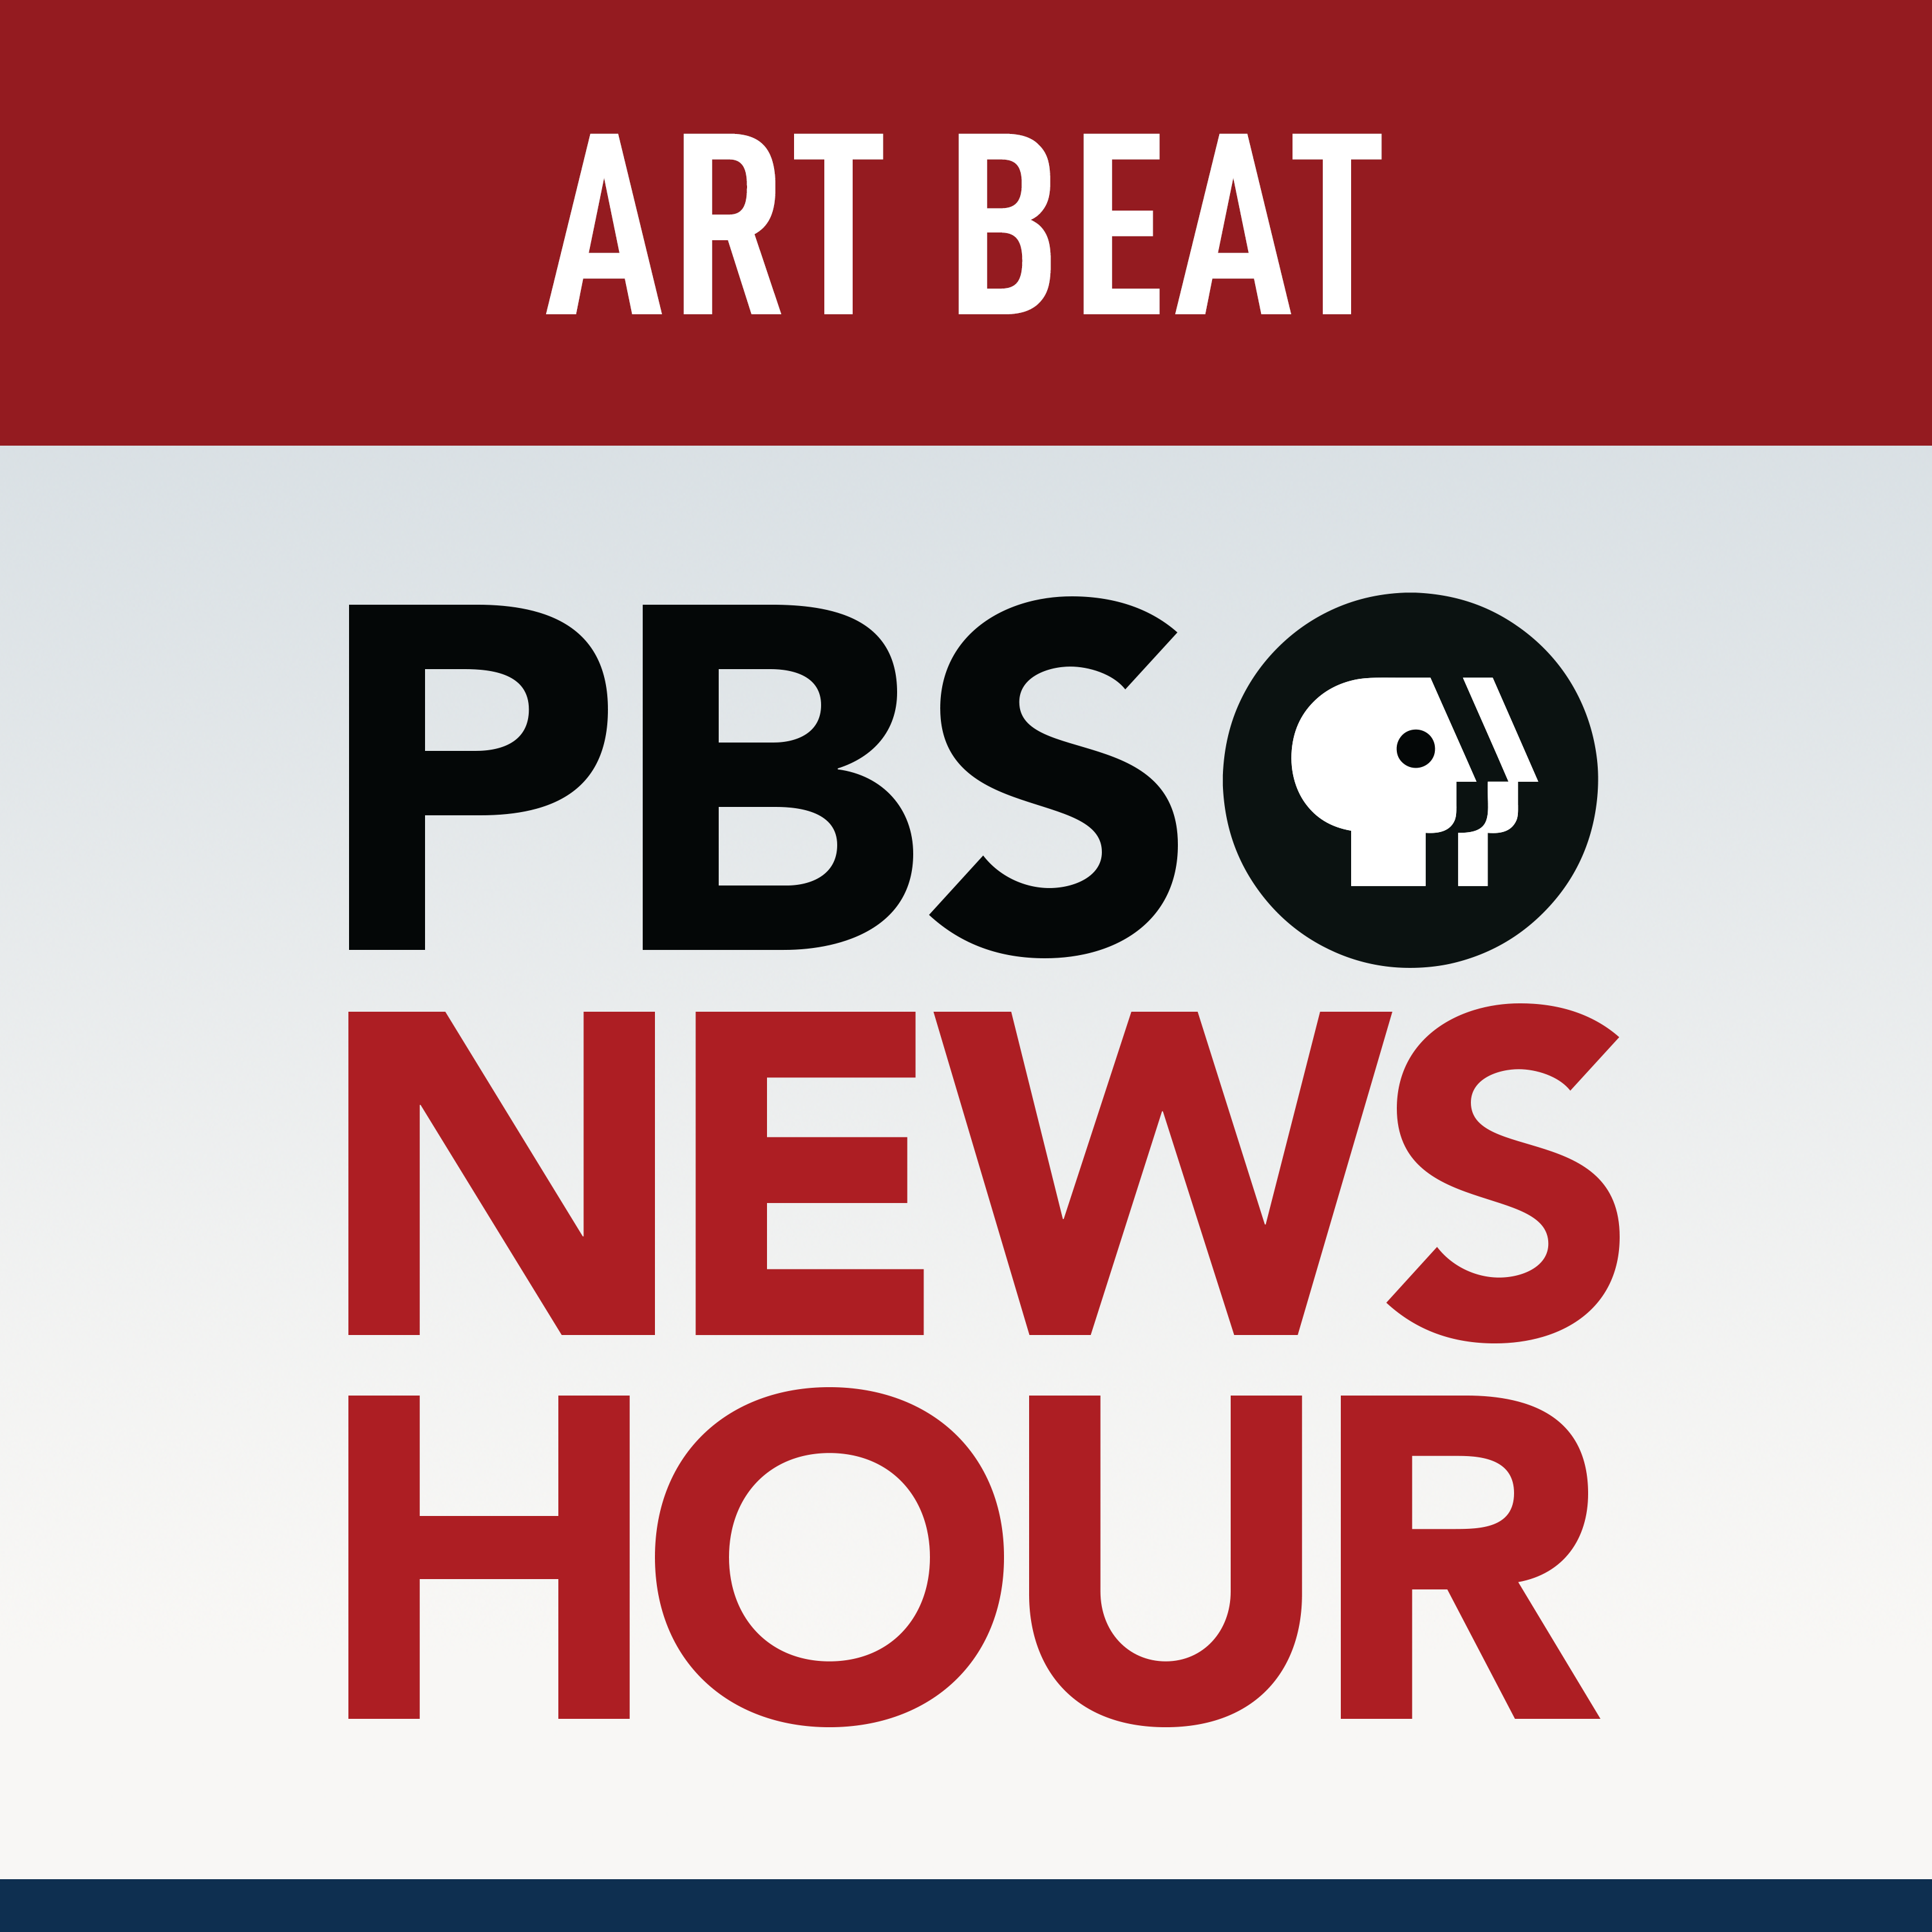 PBS NewsHour - Art Beat